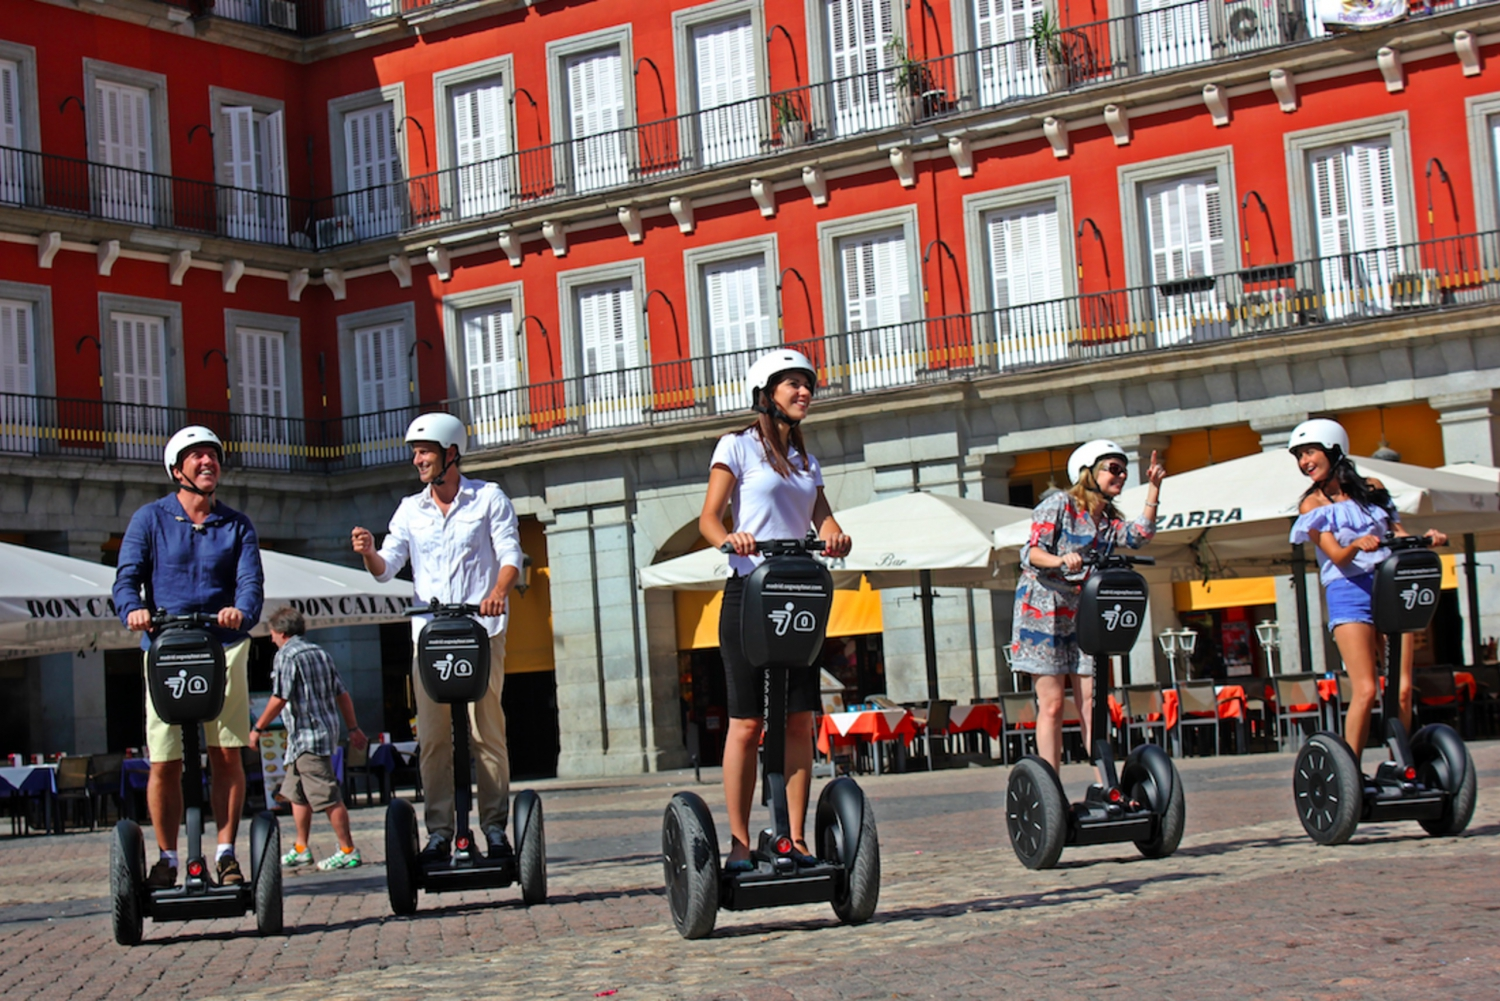 2-Hour Segway Tour of the Historic Center